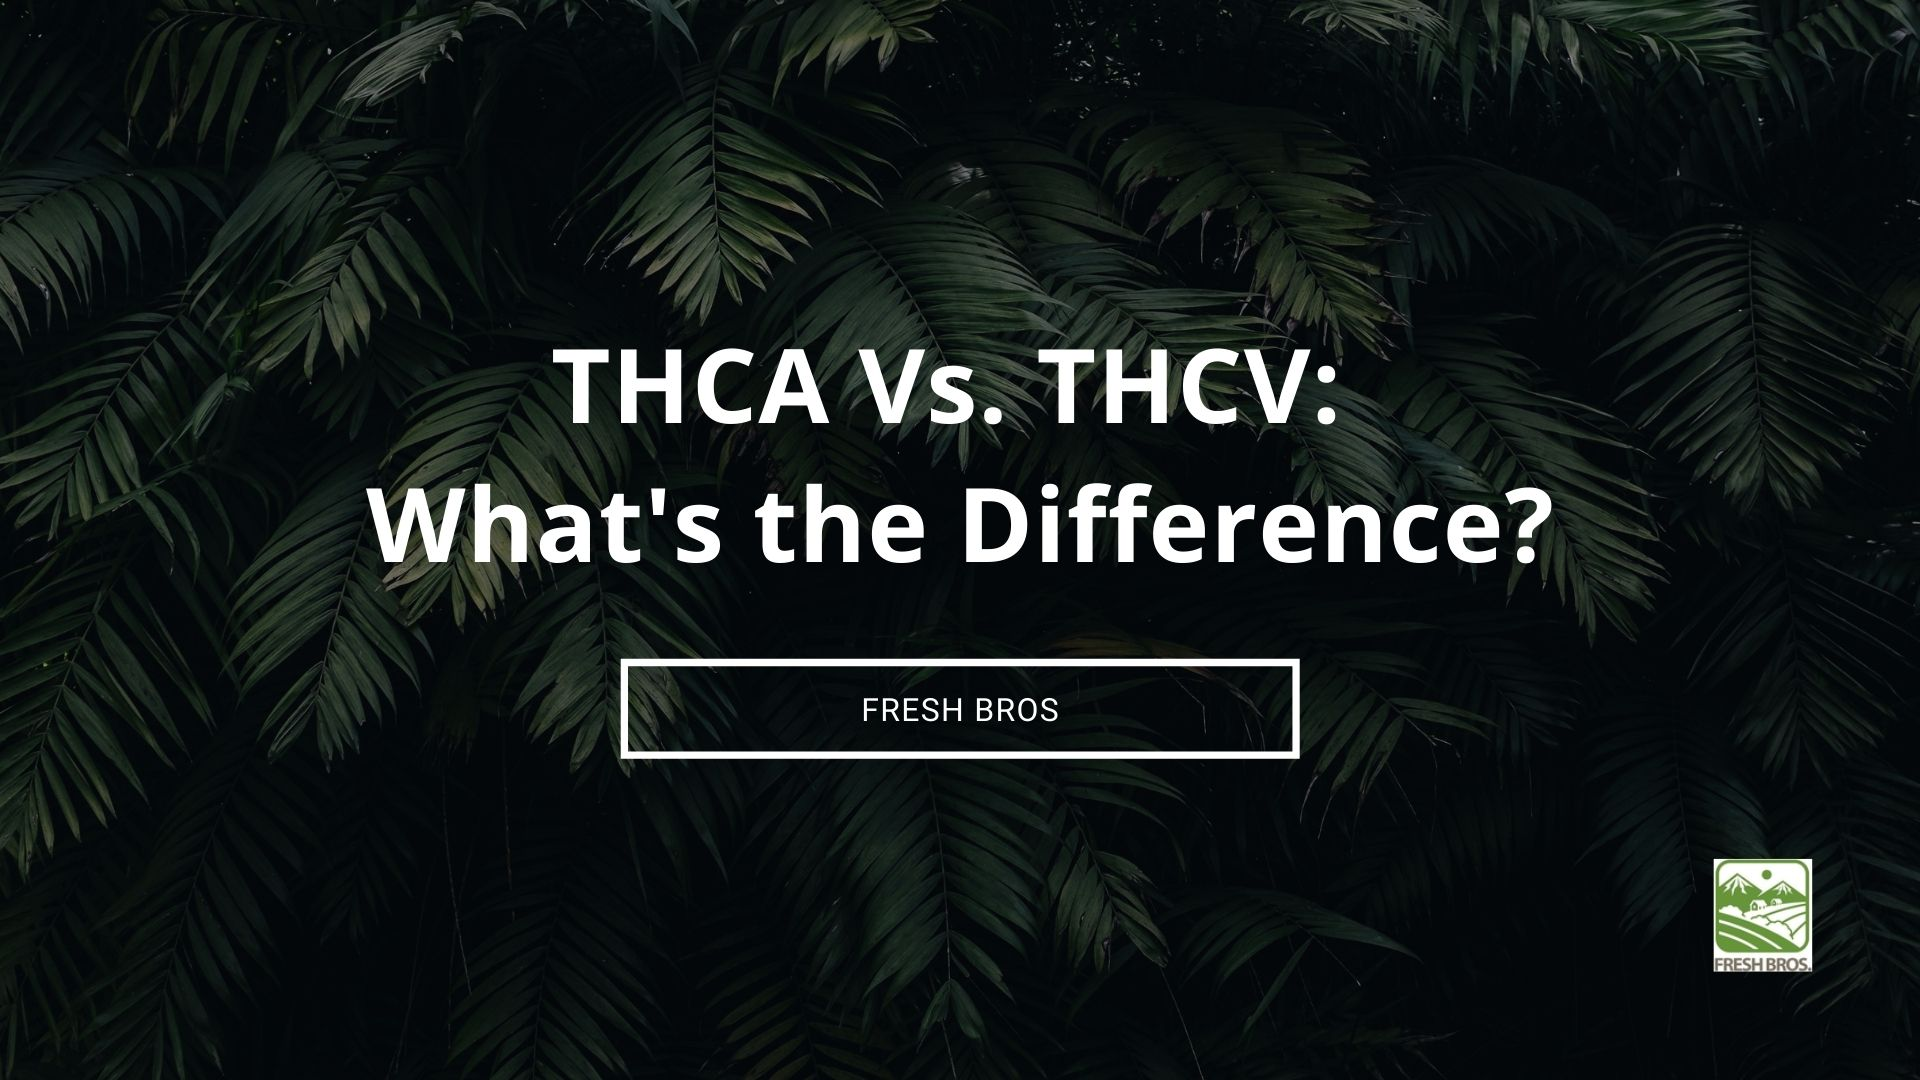 THCA vs THCV: What's The Difference Between Cannabinoids THCA and THCV?